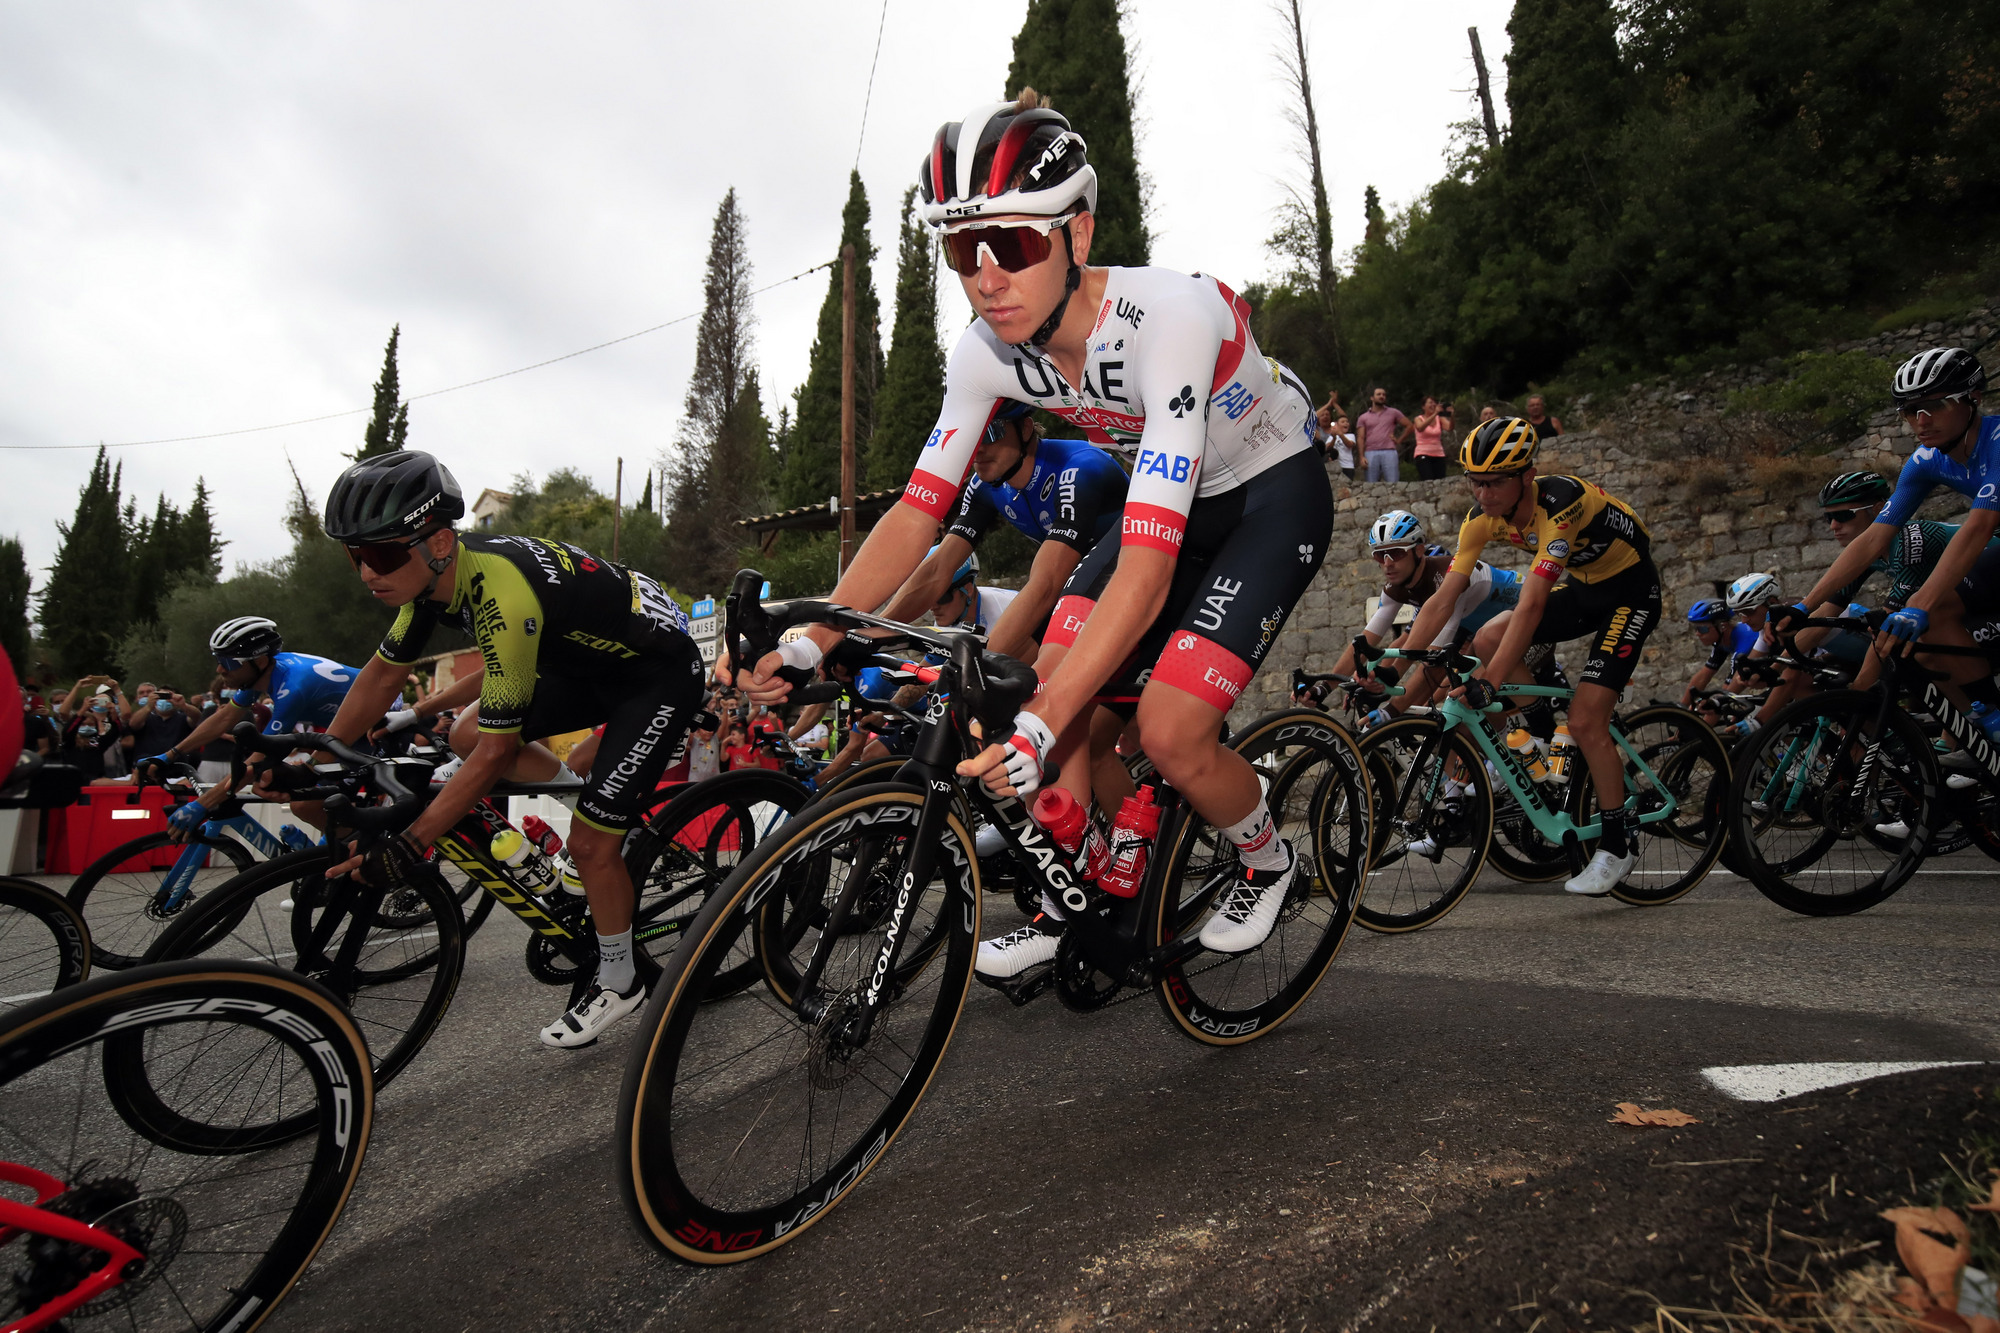 Tour de France 2020 107th Edition 1st stage Nice Nice 156 km 29082020 Tadej Pogacar SLO UAE Team Emirates photo Luca BettiniBettiniPhoto2020